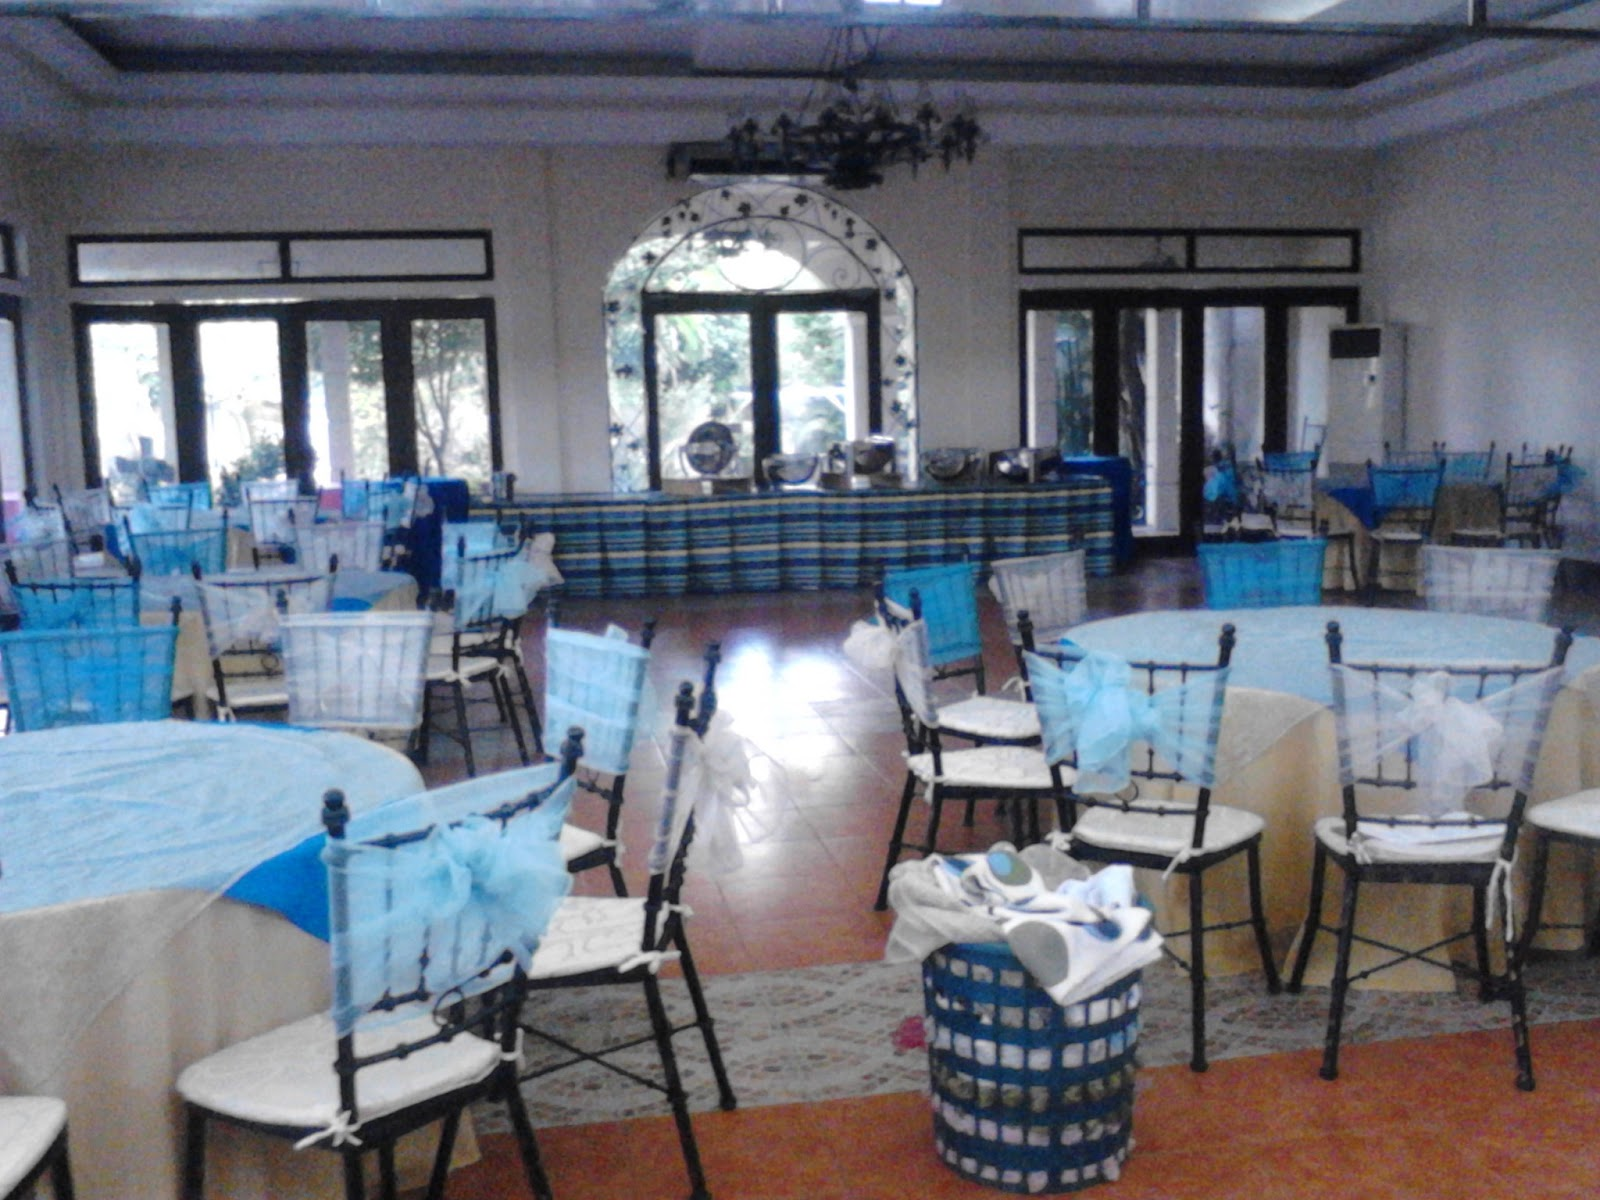 I Know There Are Still A Lot Of Best Wedding Venues In Gensan But These Three Have Elaborated Here Within The City And Very Accessible To